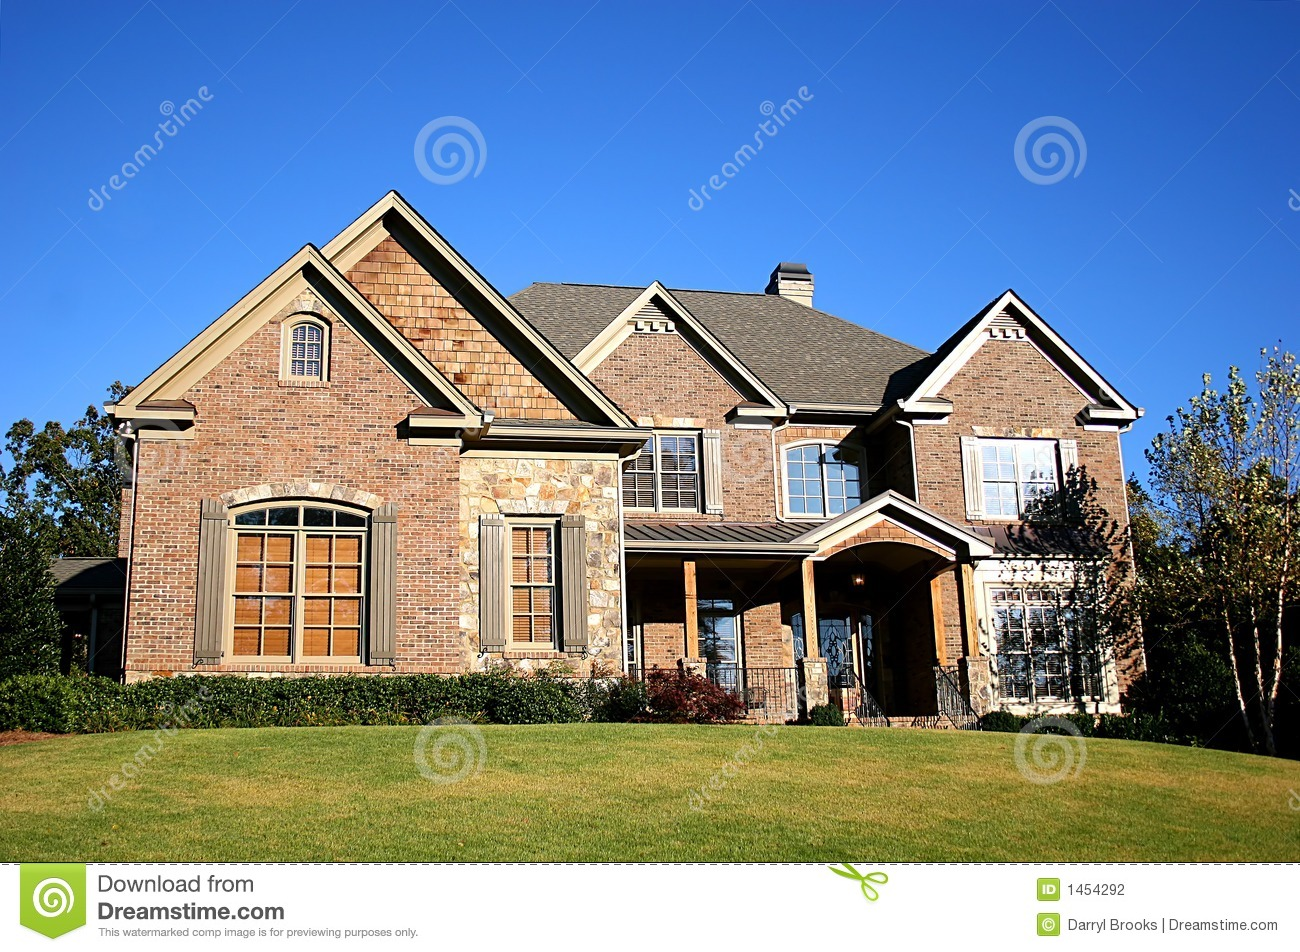 Nice house stock photography image 1454292 for Nice home image